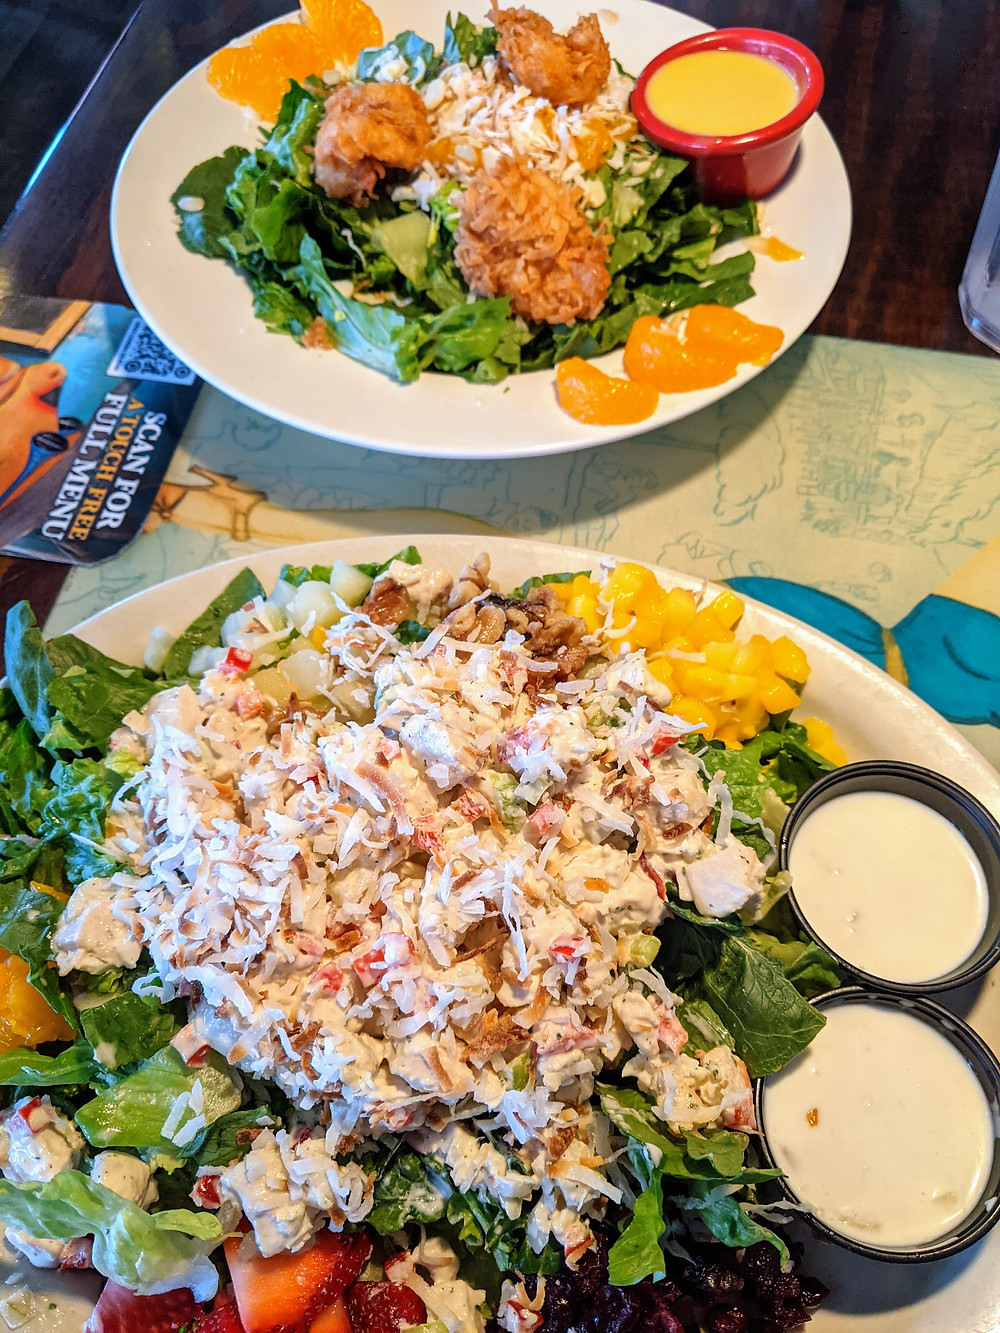 Fried coconut shrimp and chicken salad with flaked coconut.